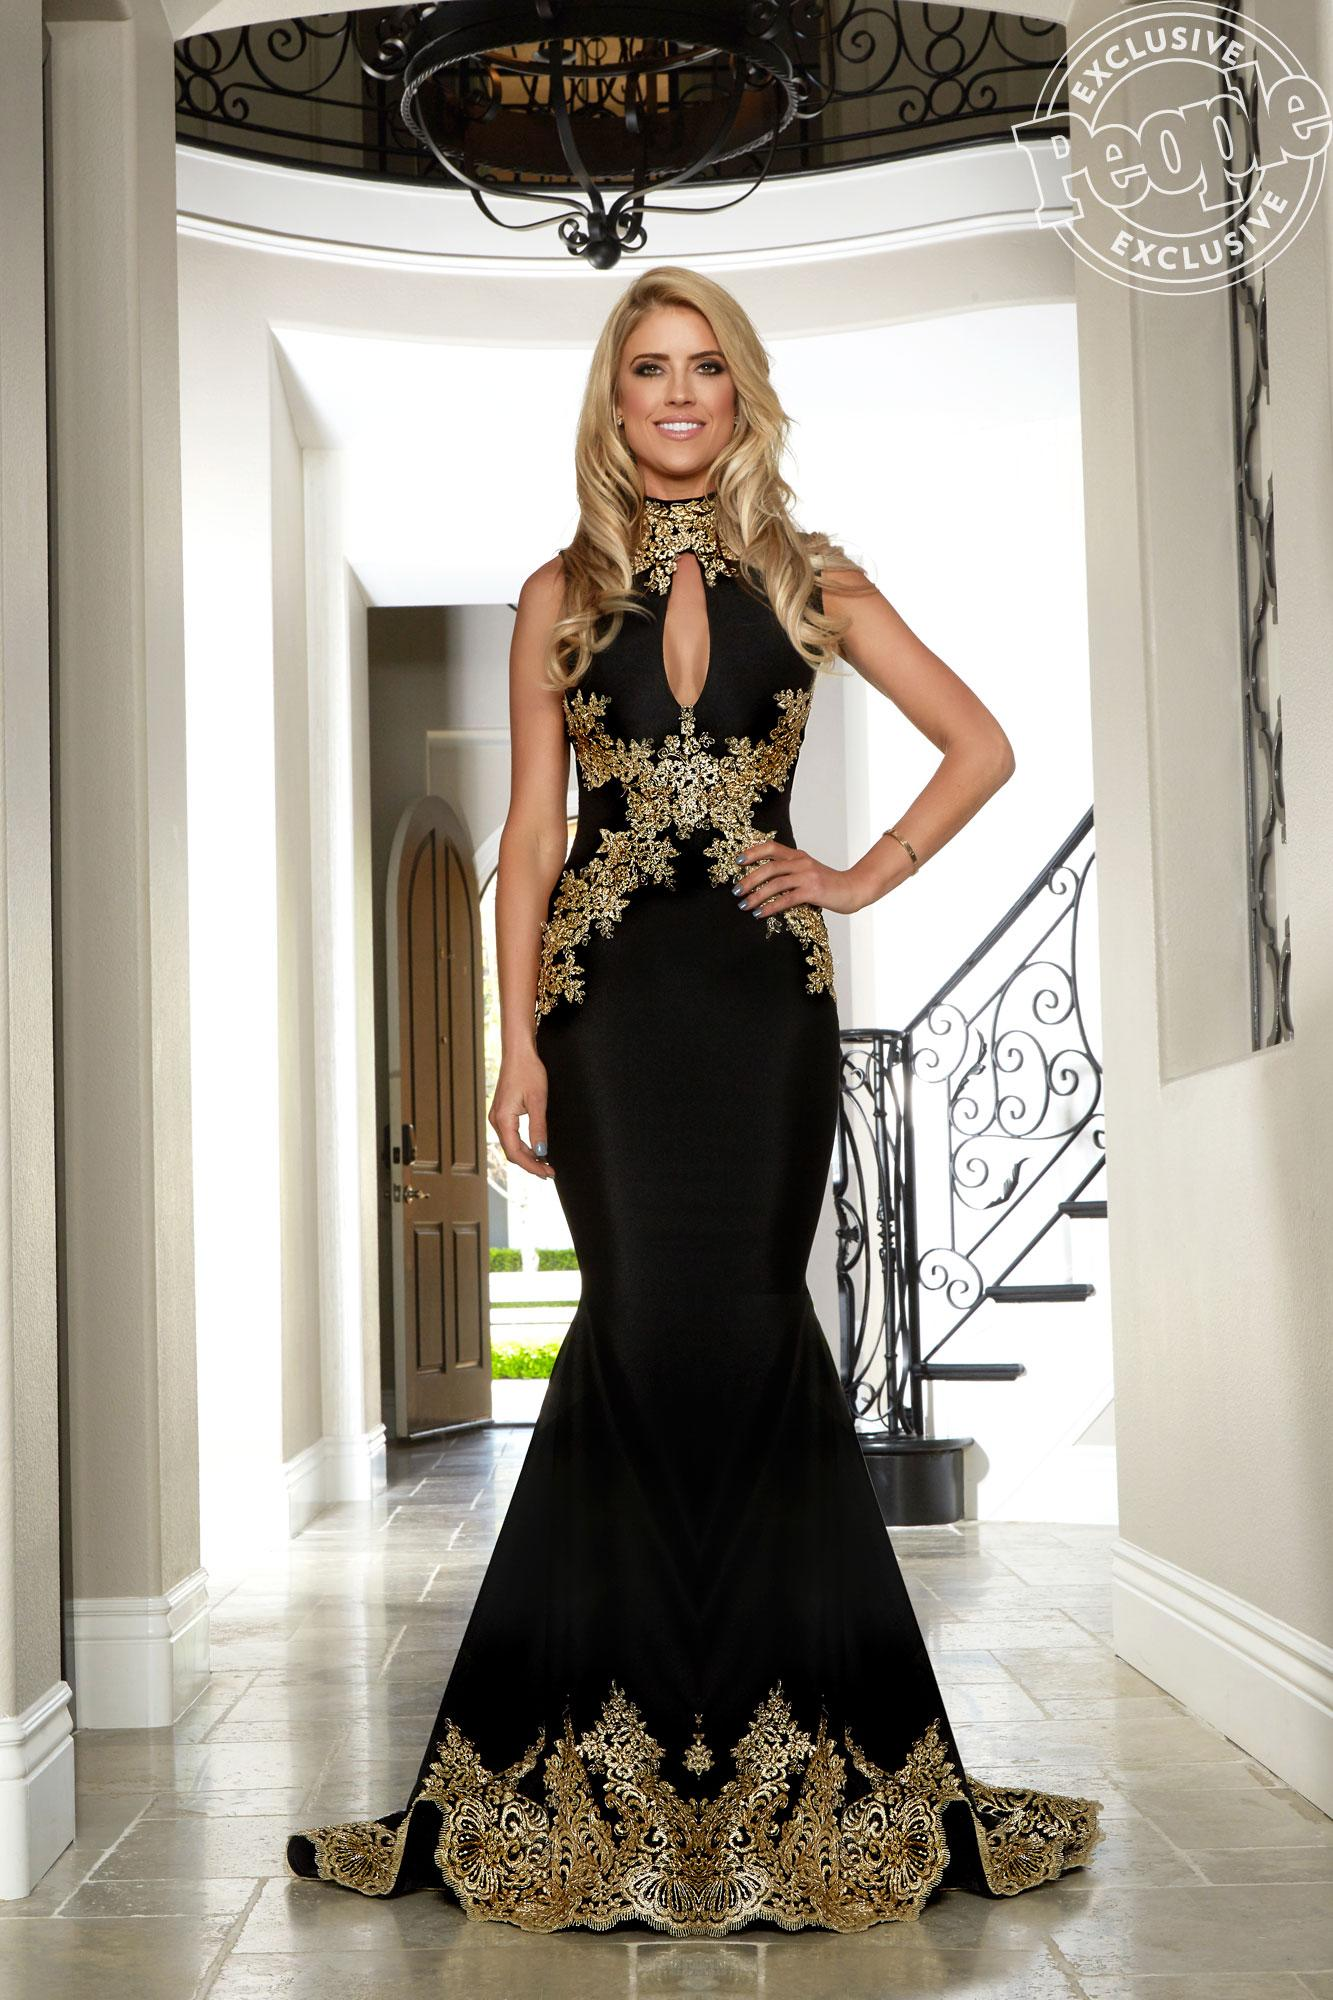 Christina El Moussa: Moving on and Looking Great! Christina El Moussa